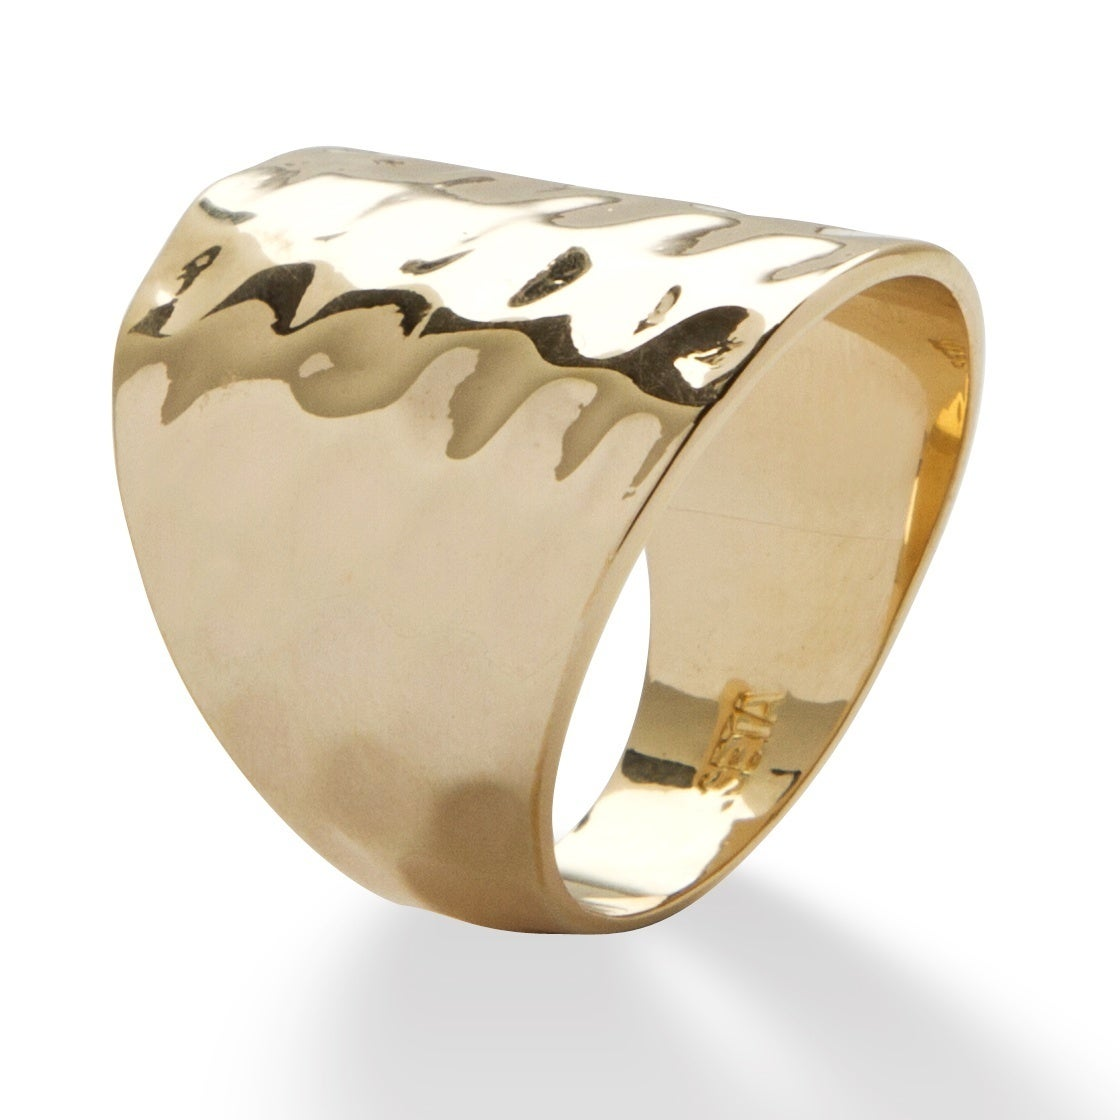 Toscana - 14k Gold-Plated Hammered-Style Band ORNLglpnIC